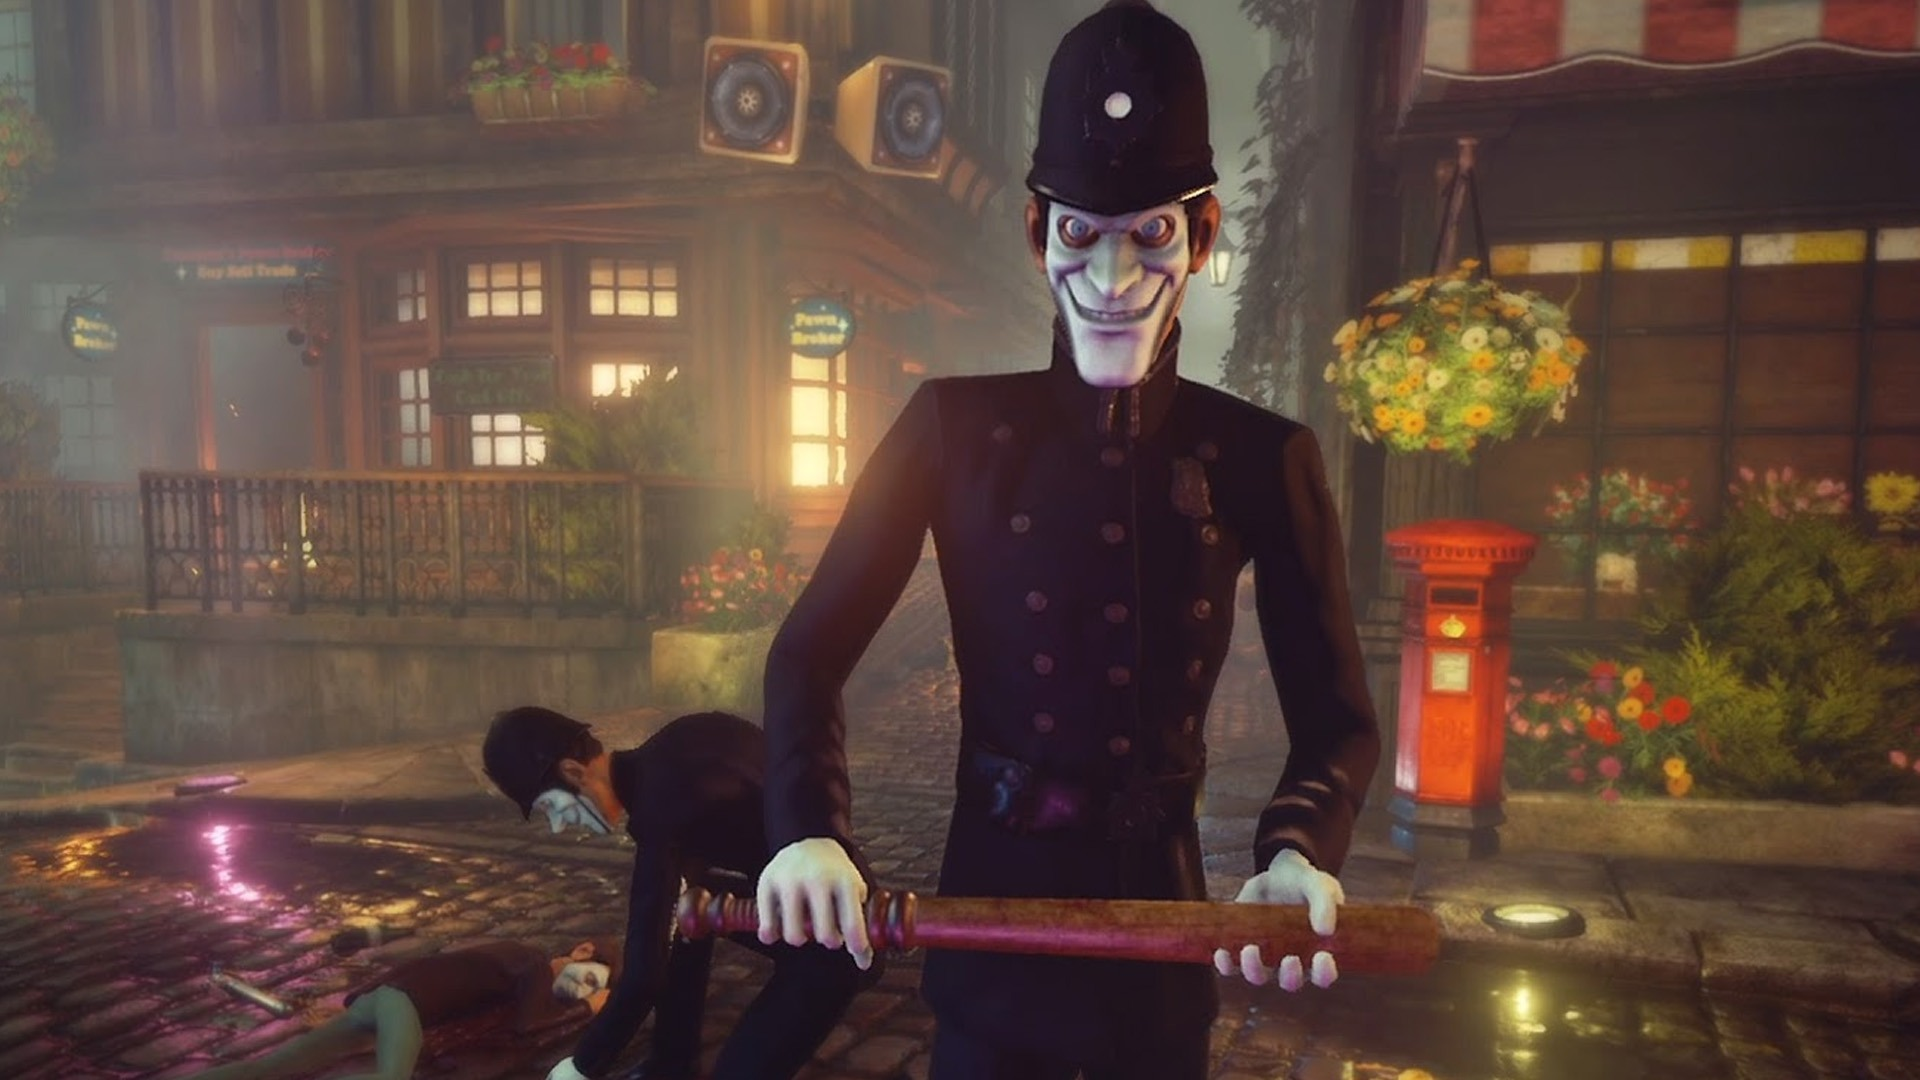 E3 2016: We Happy Few was my Xbox briefing highlight